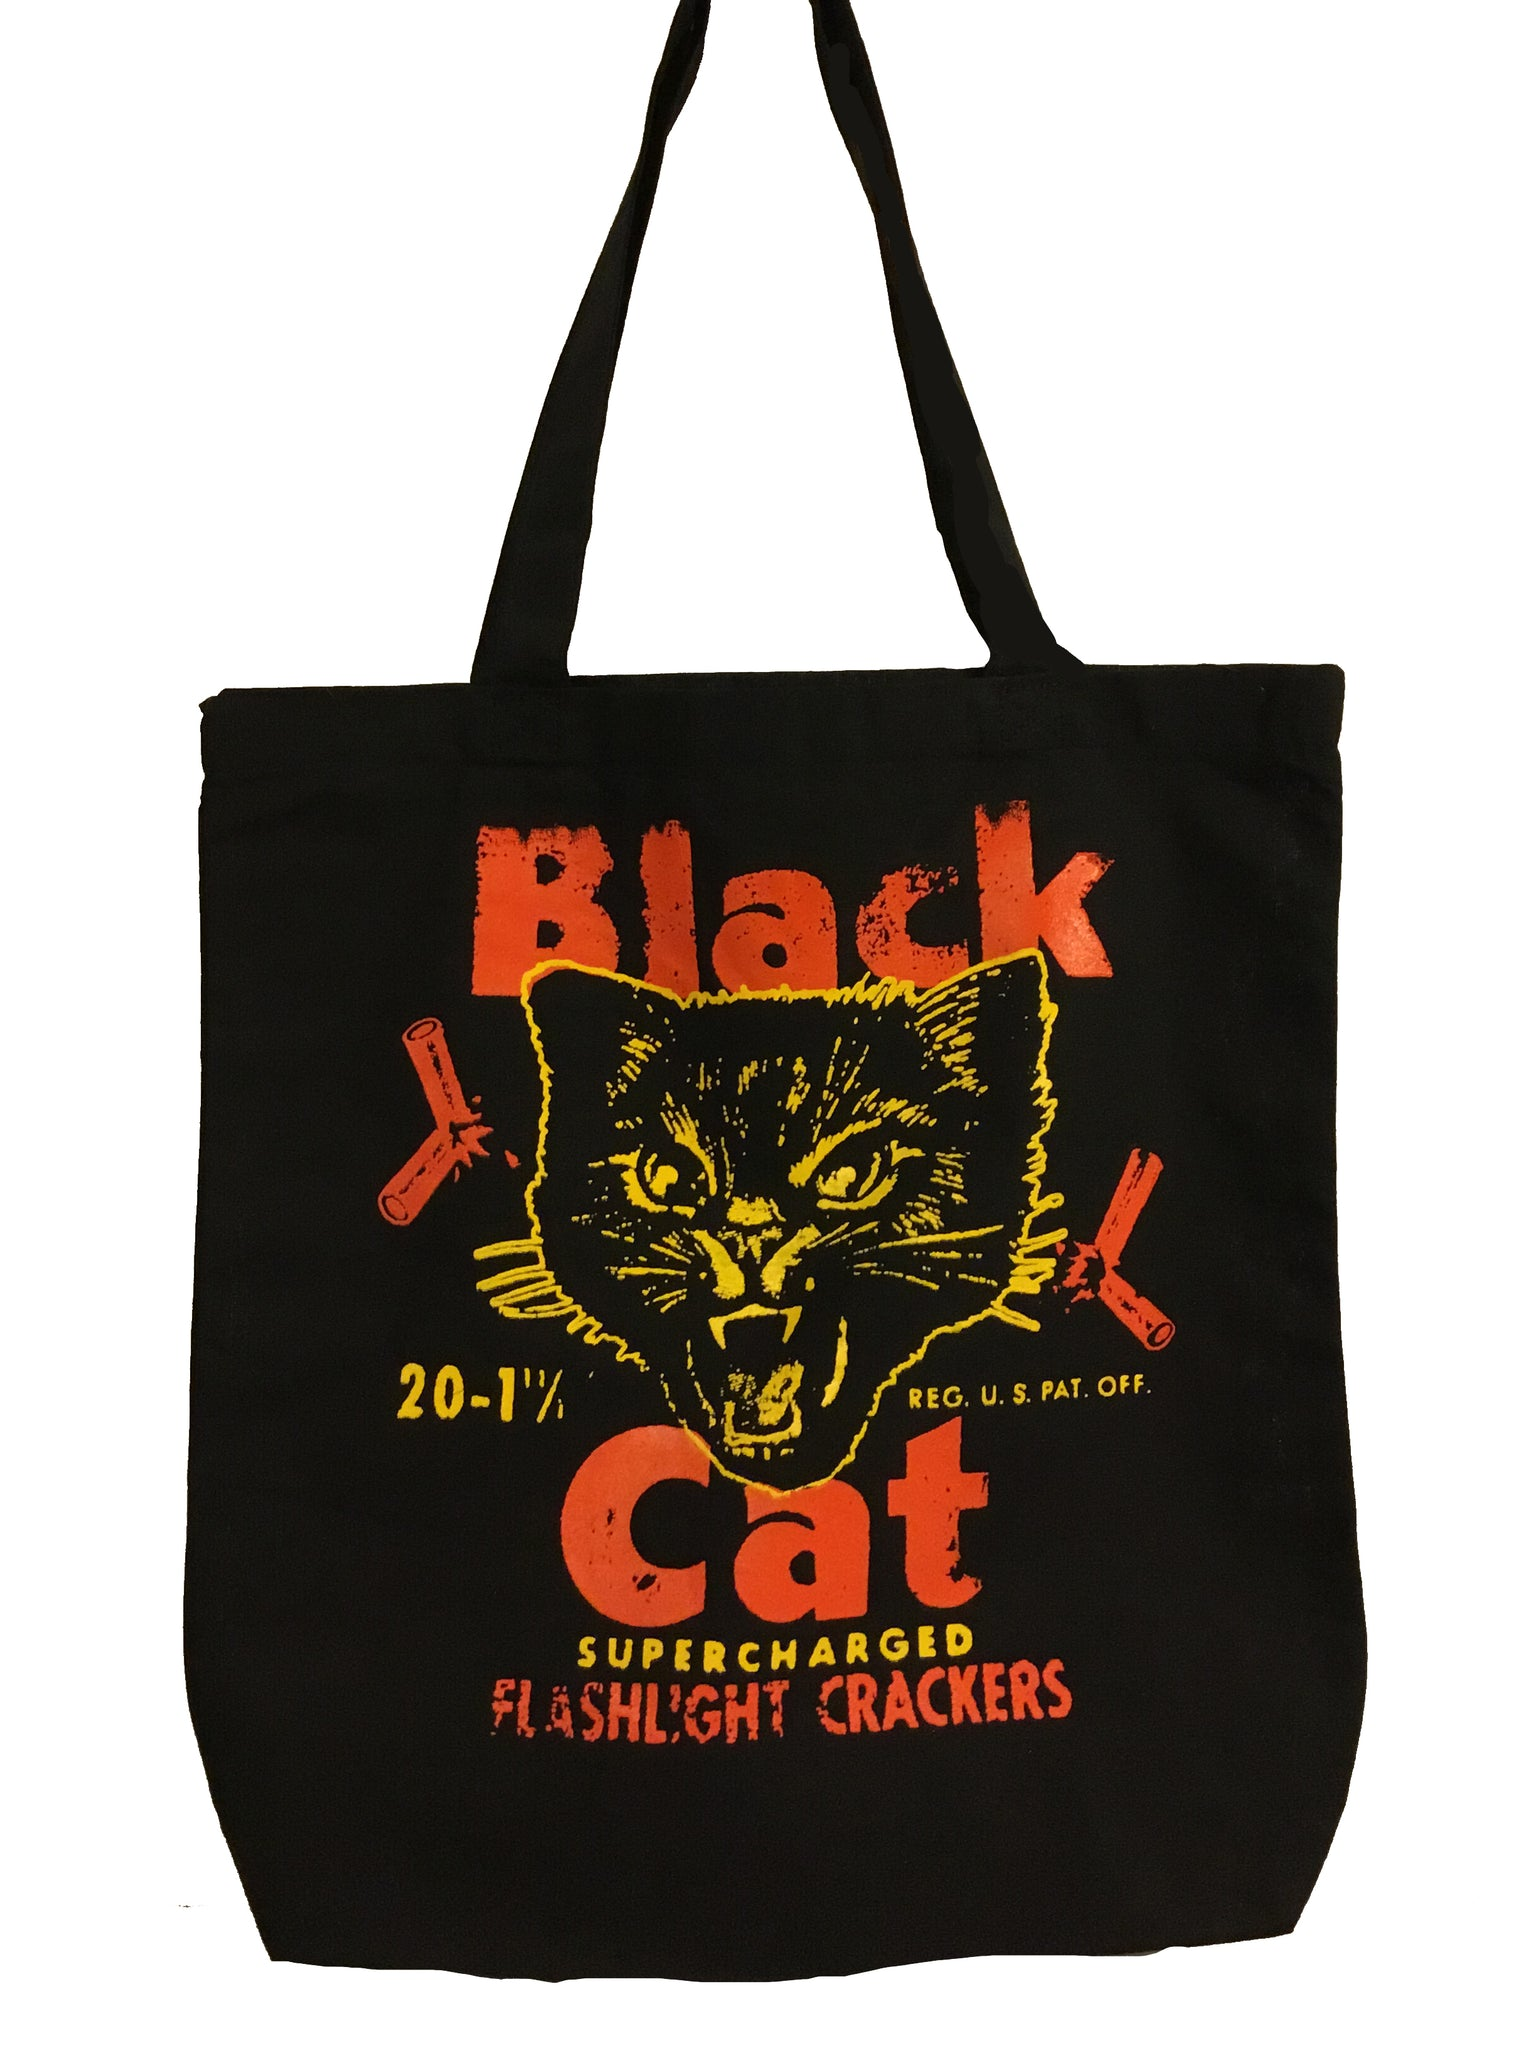 Black Cat Flashlight Crackers Tote Bag - Corvus: Clothing and Curiosities